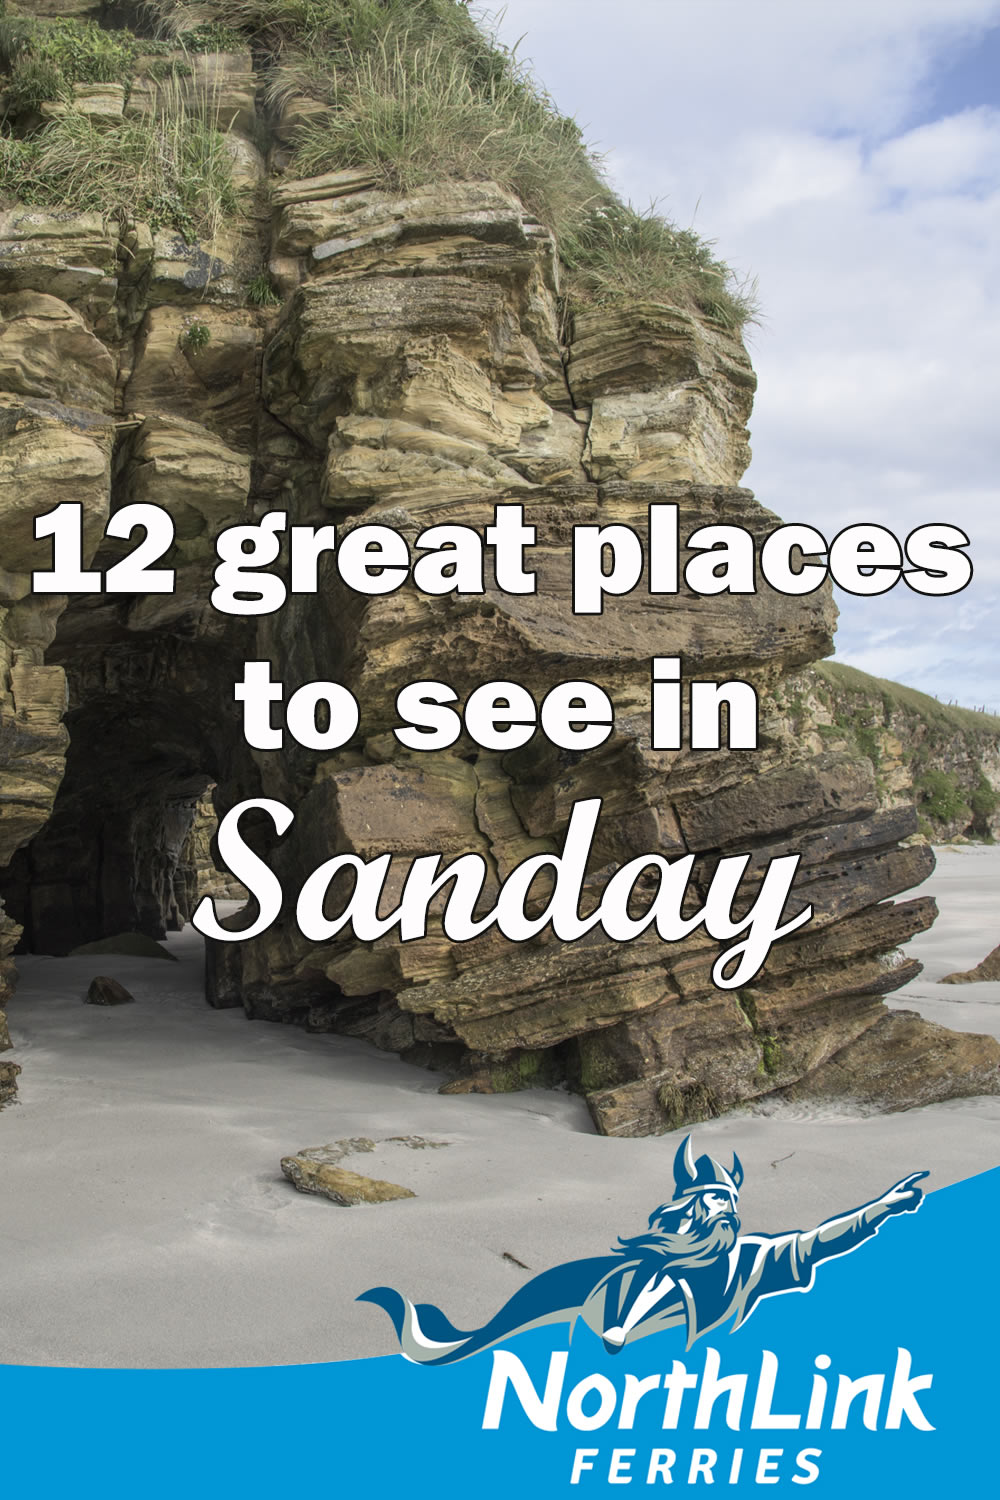 12 great places to see in Sanday